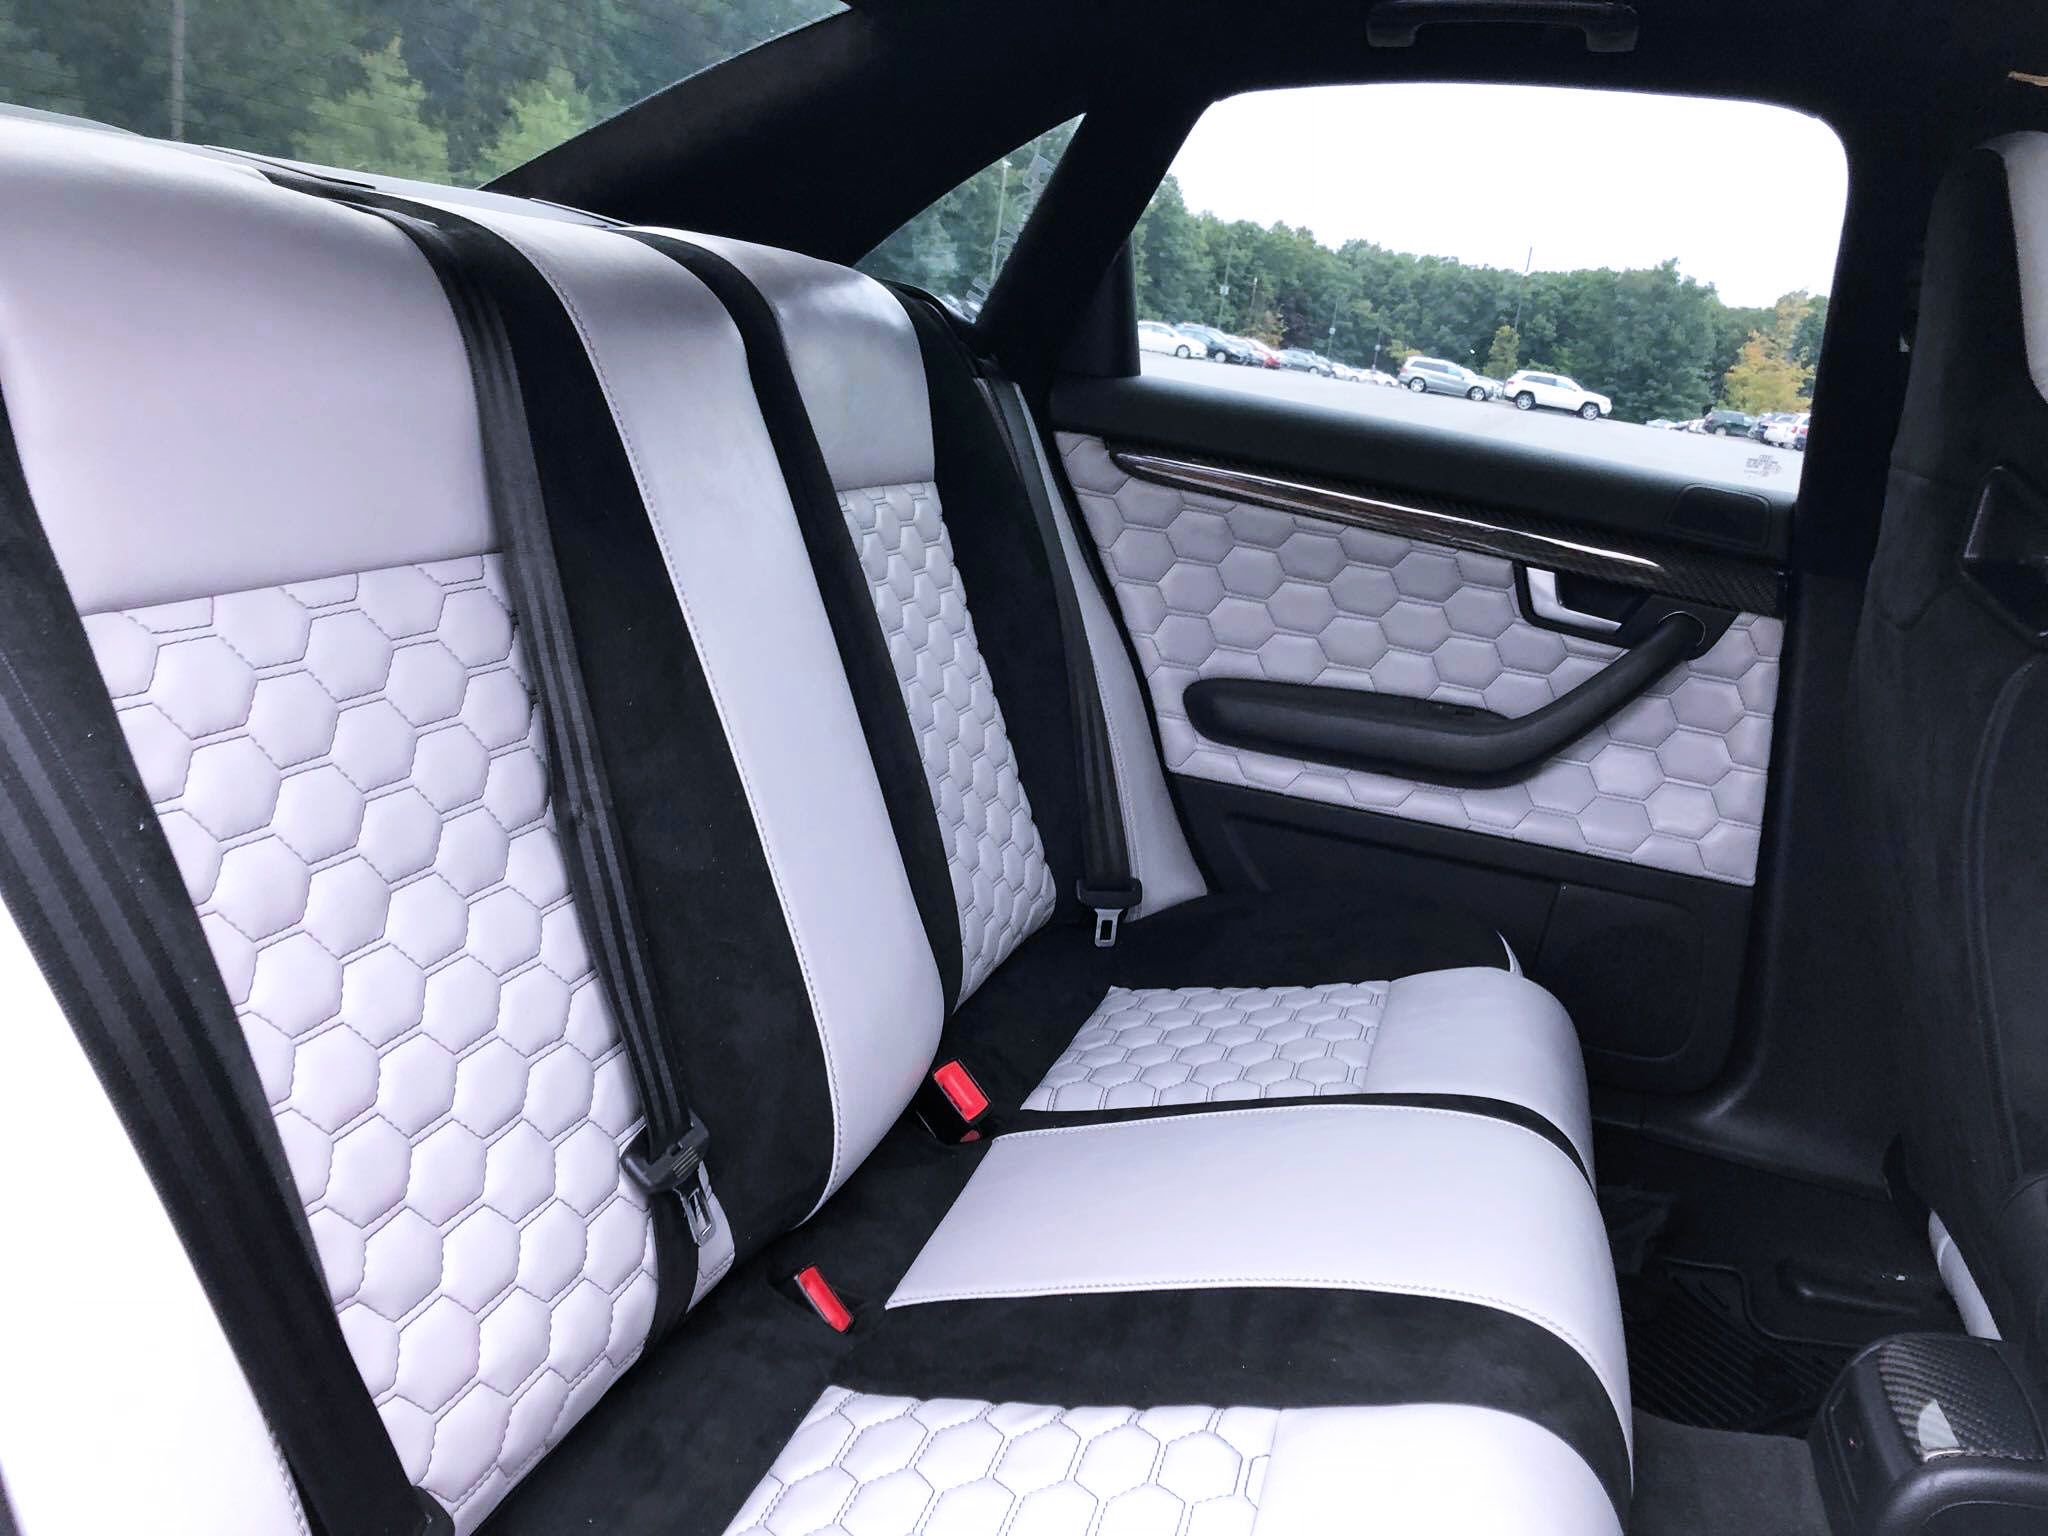 2006 Audi S4 - Full custom interior with hexagon stitching and black micro suede seats and door panels.